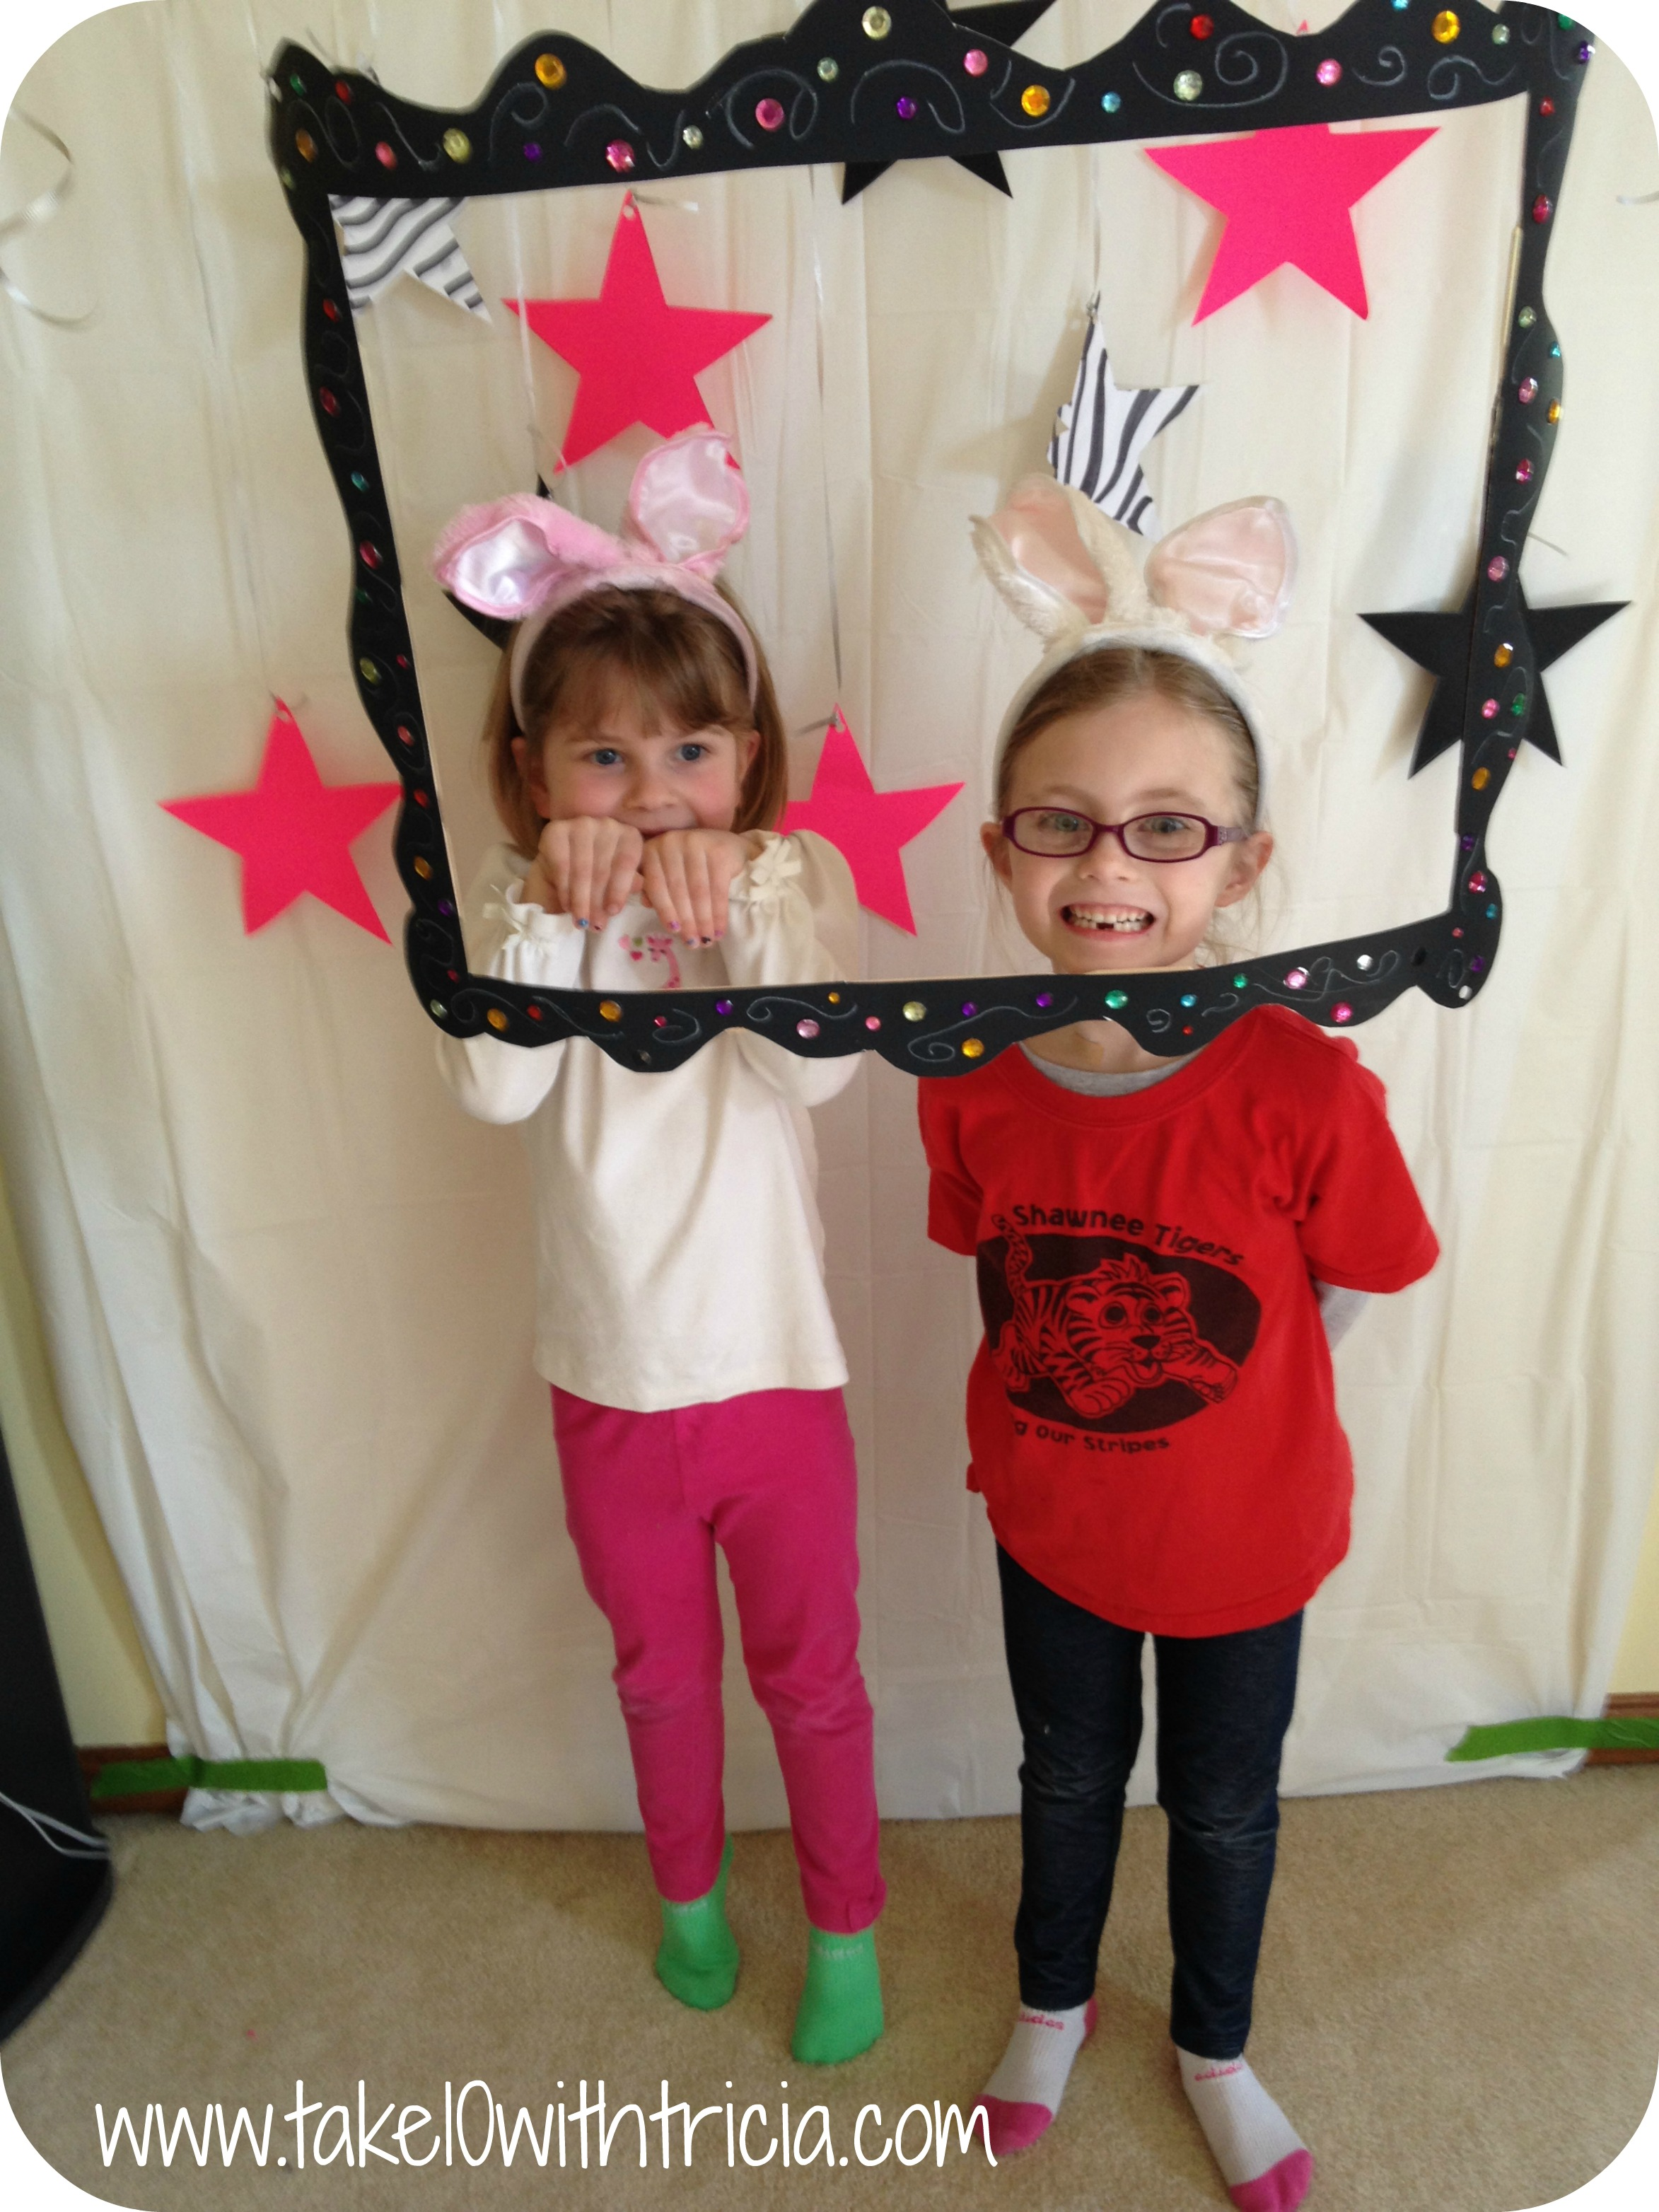 photo booth themed birthday party ; Baby-doll-theme-birthday-party-photo-booth-girls